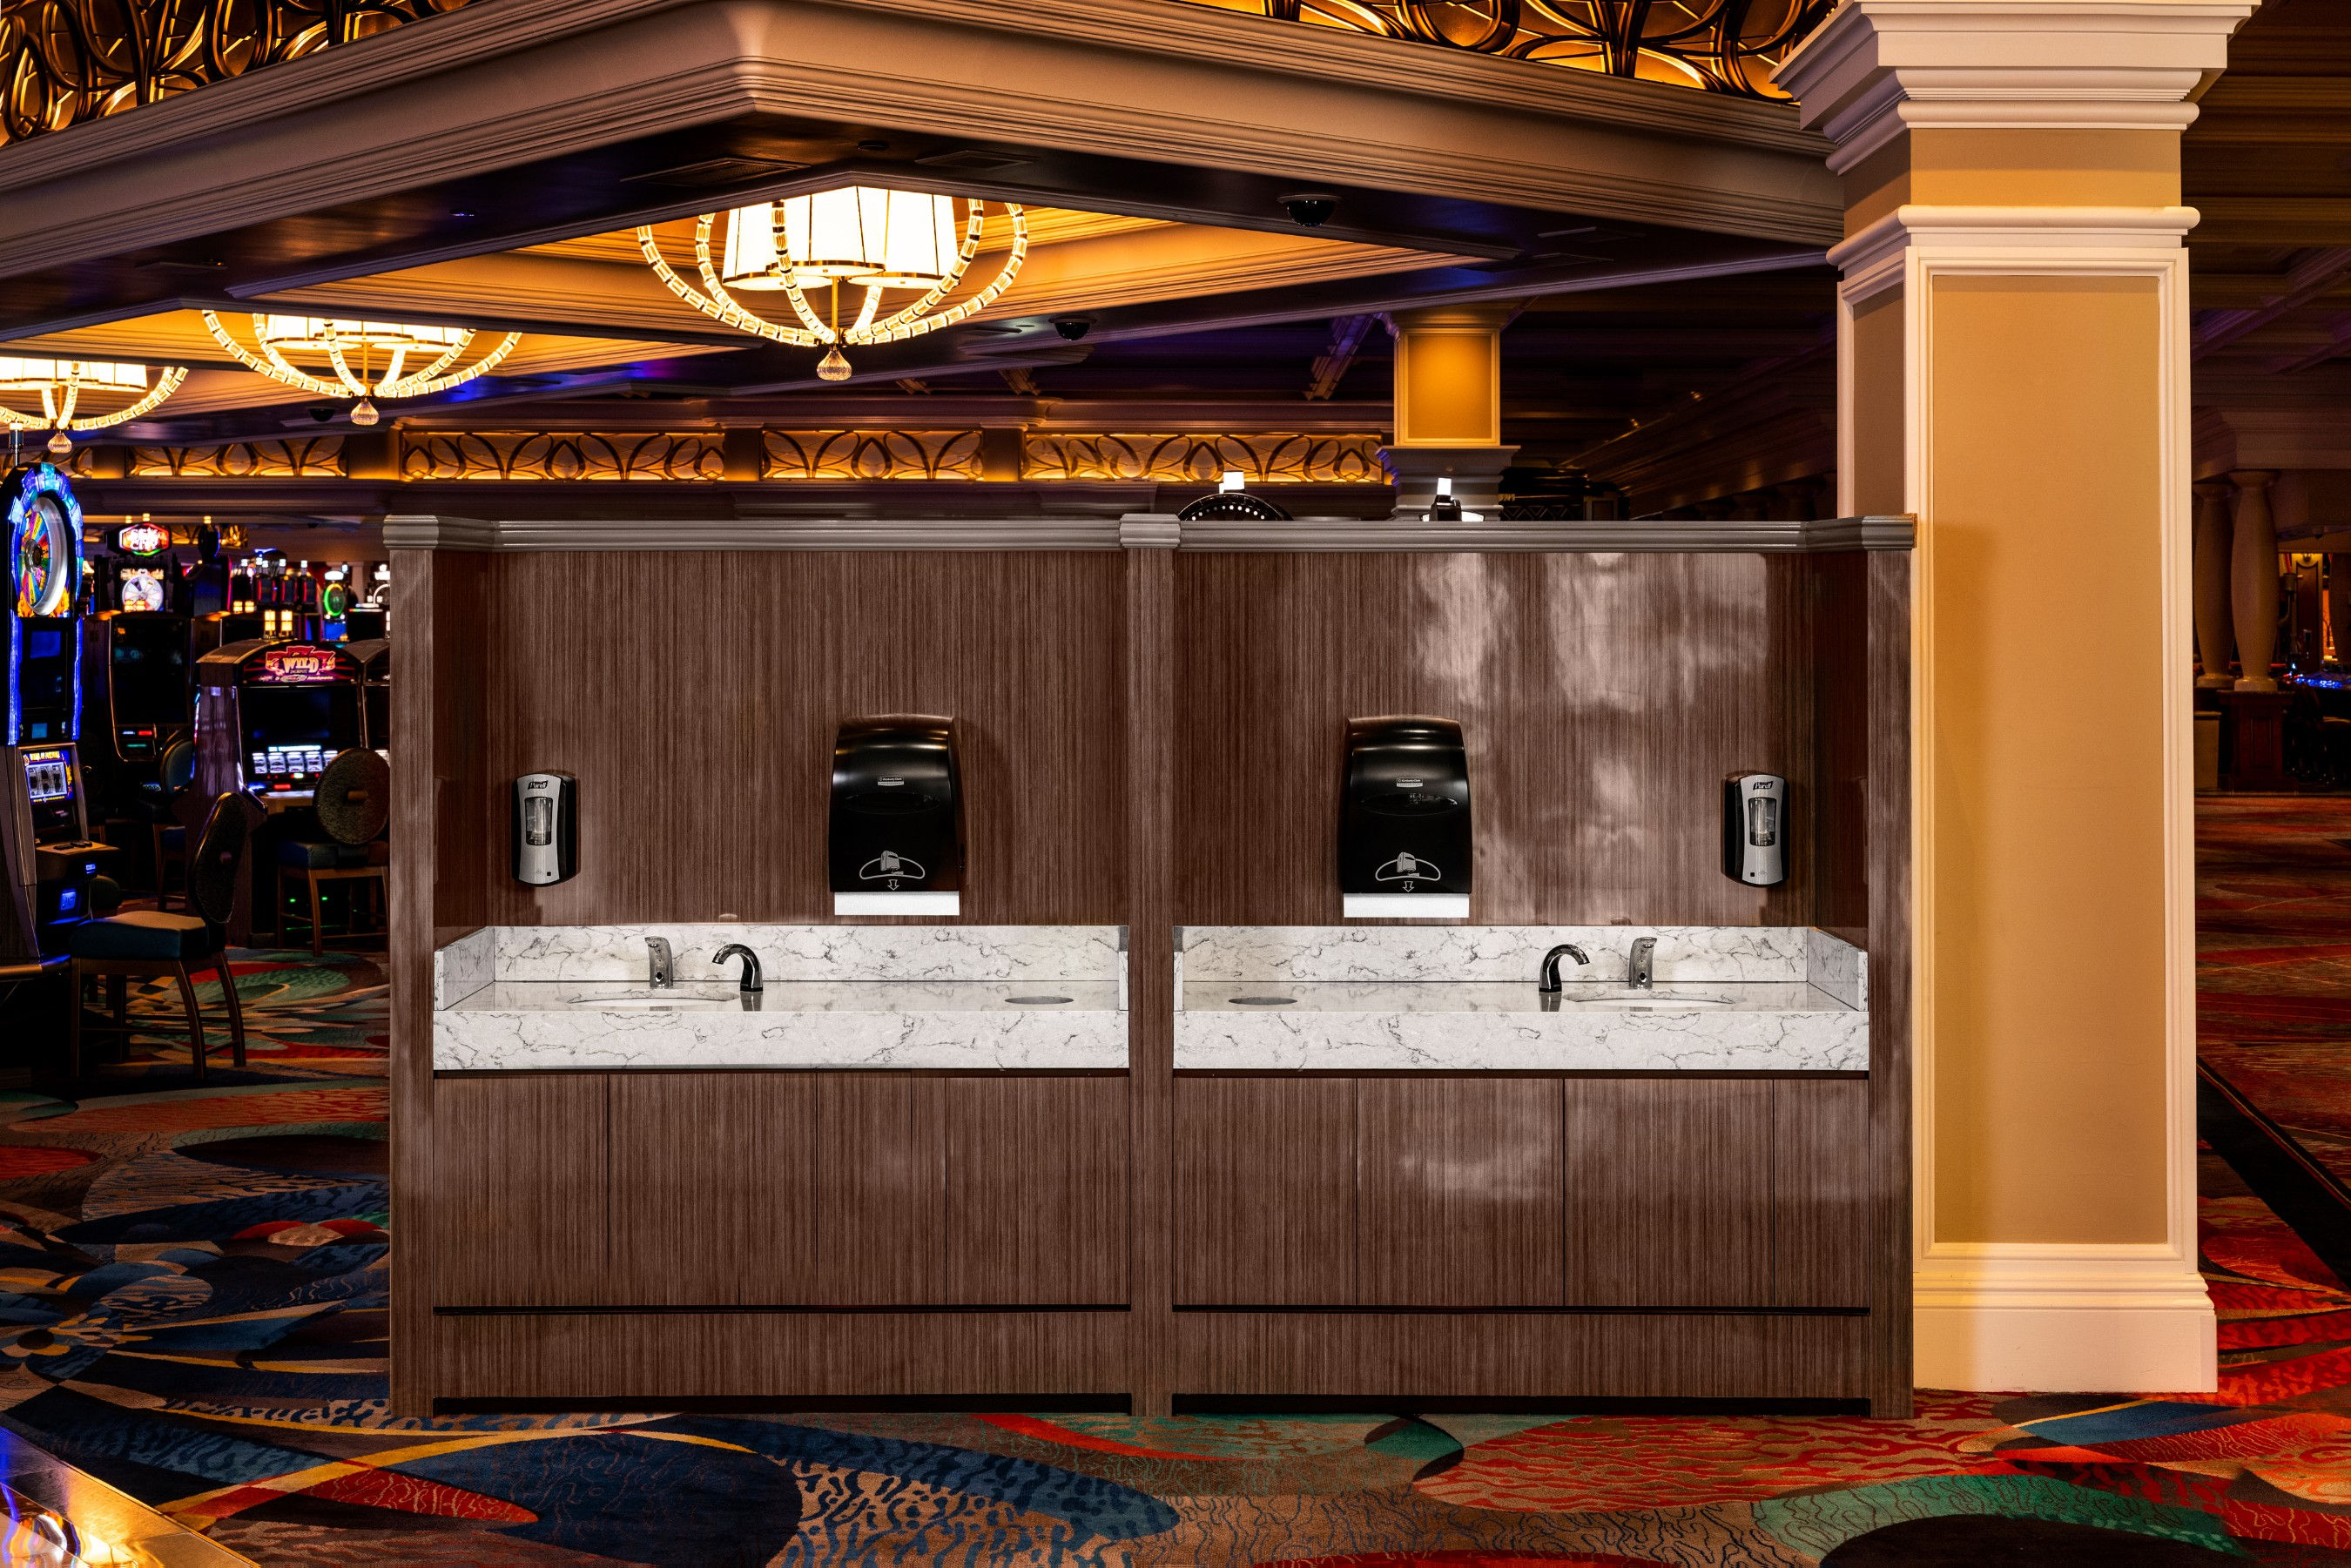 Early version of handwashing stations being custom built and installed throughout casino floors in all MGM Resorts properties in the U.S.